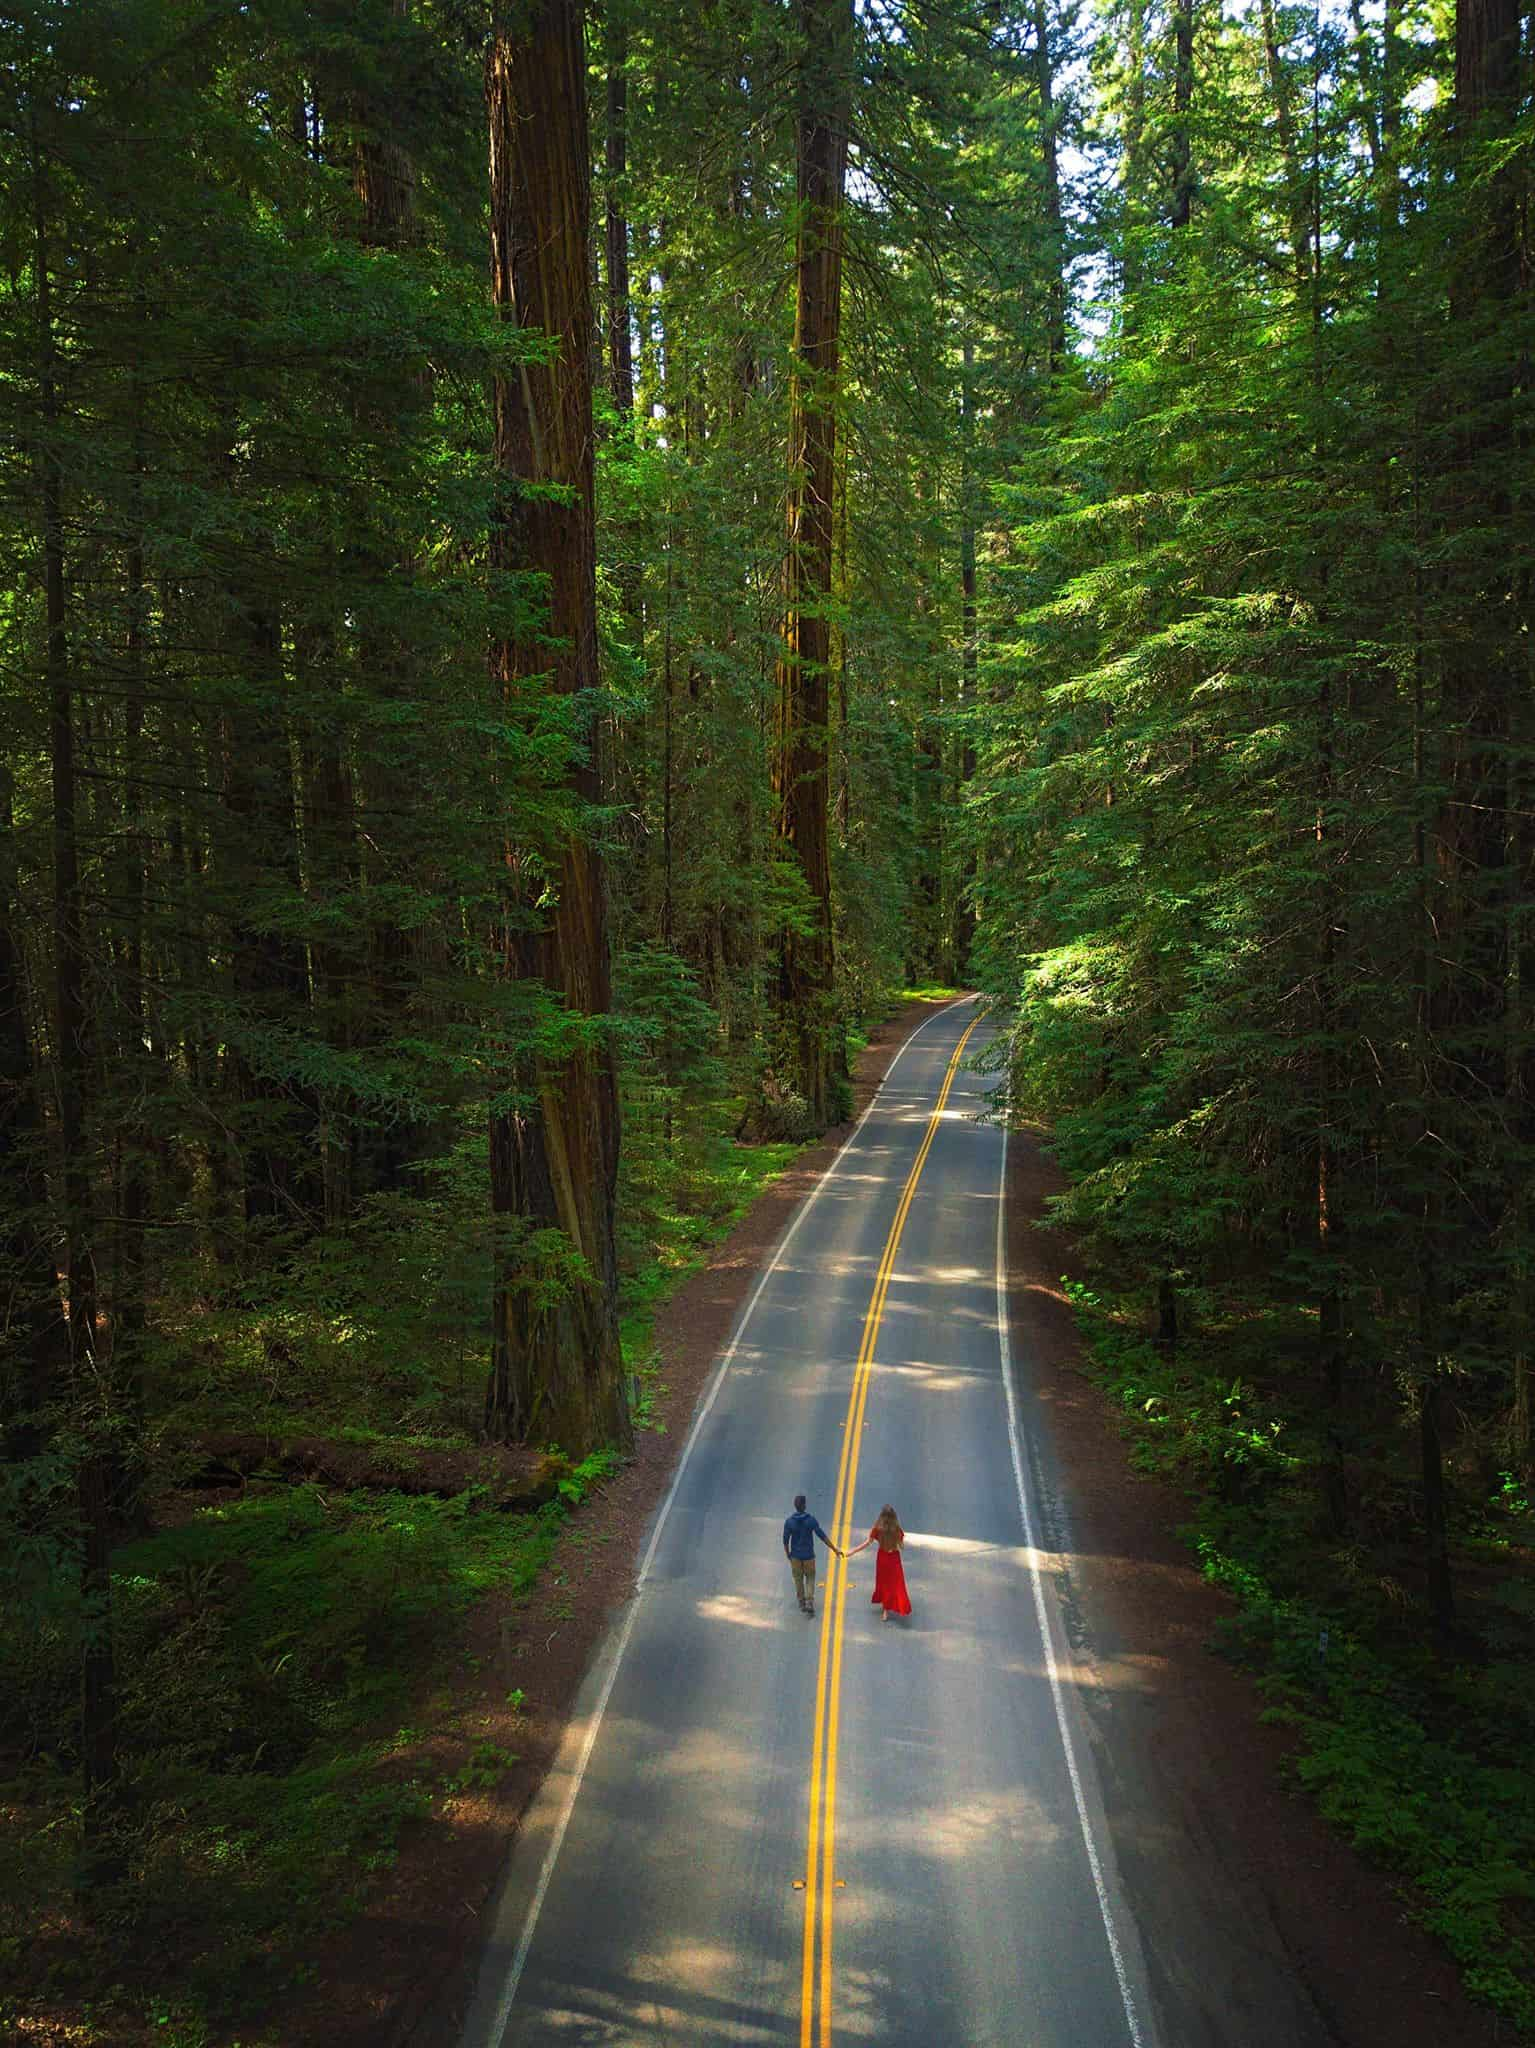 Avenue Of The Giants Northern California | Couples Photos | Redwoods national park | humboldt redwoods state park | california road trip | #california #wedding #californiadreaming #redwoods